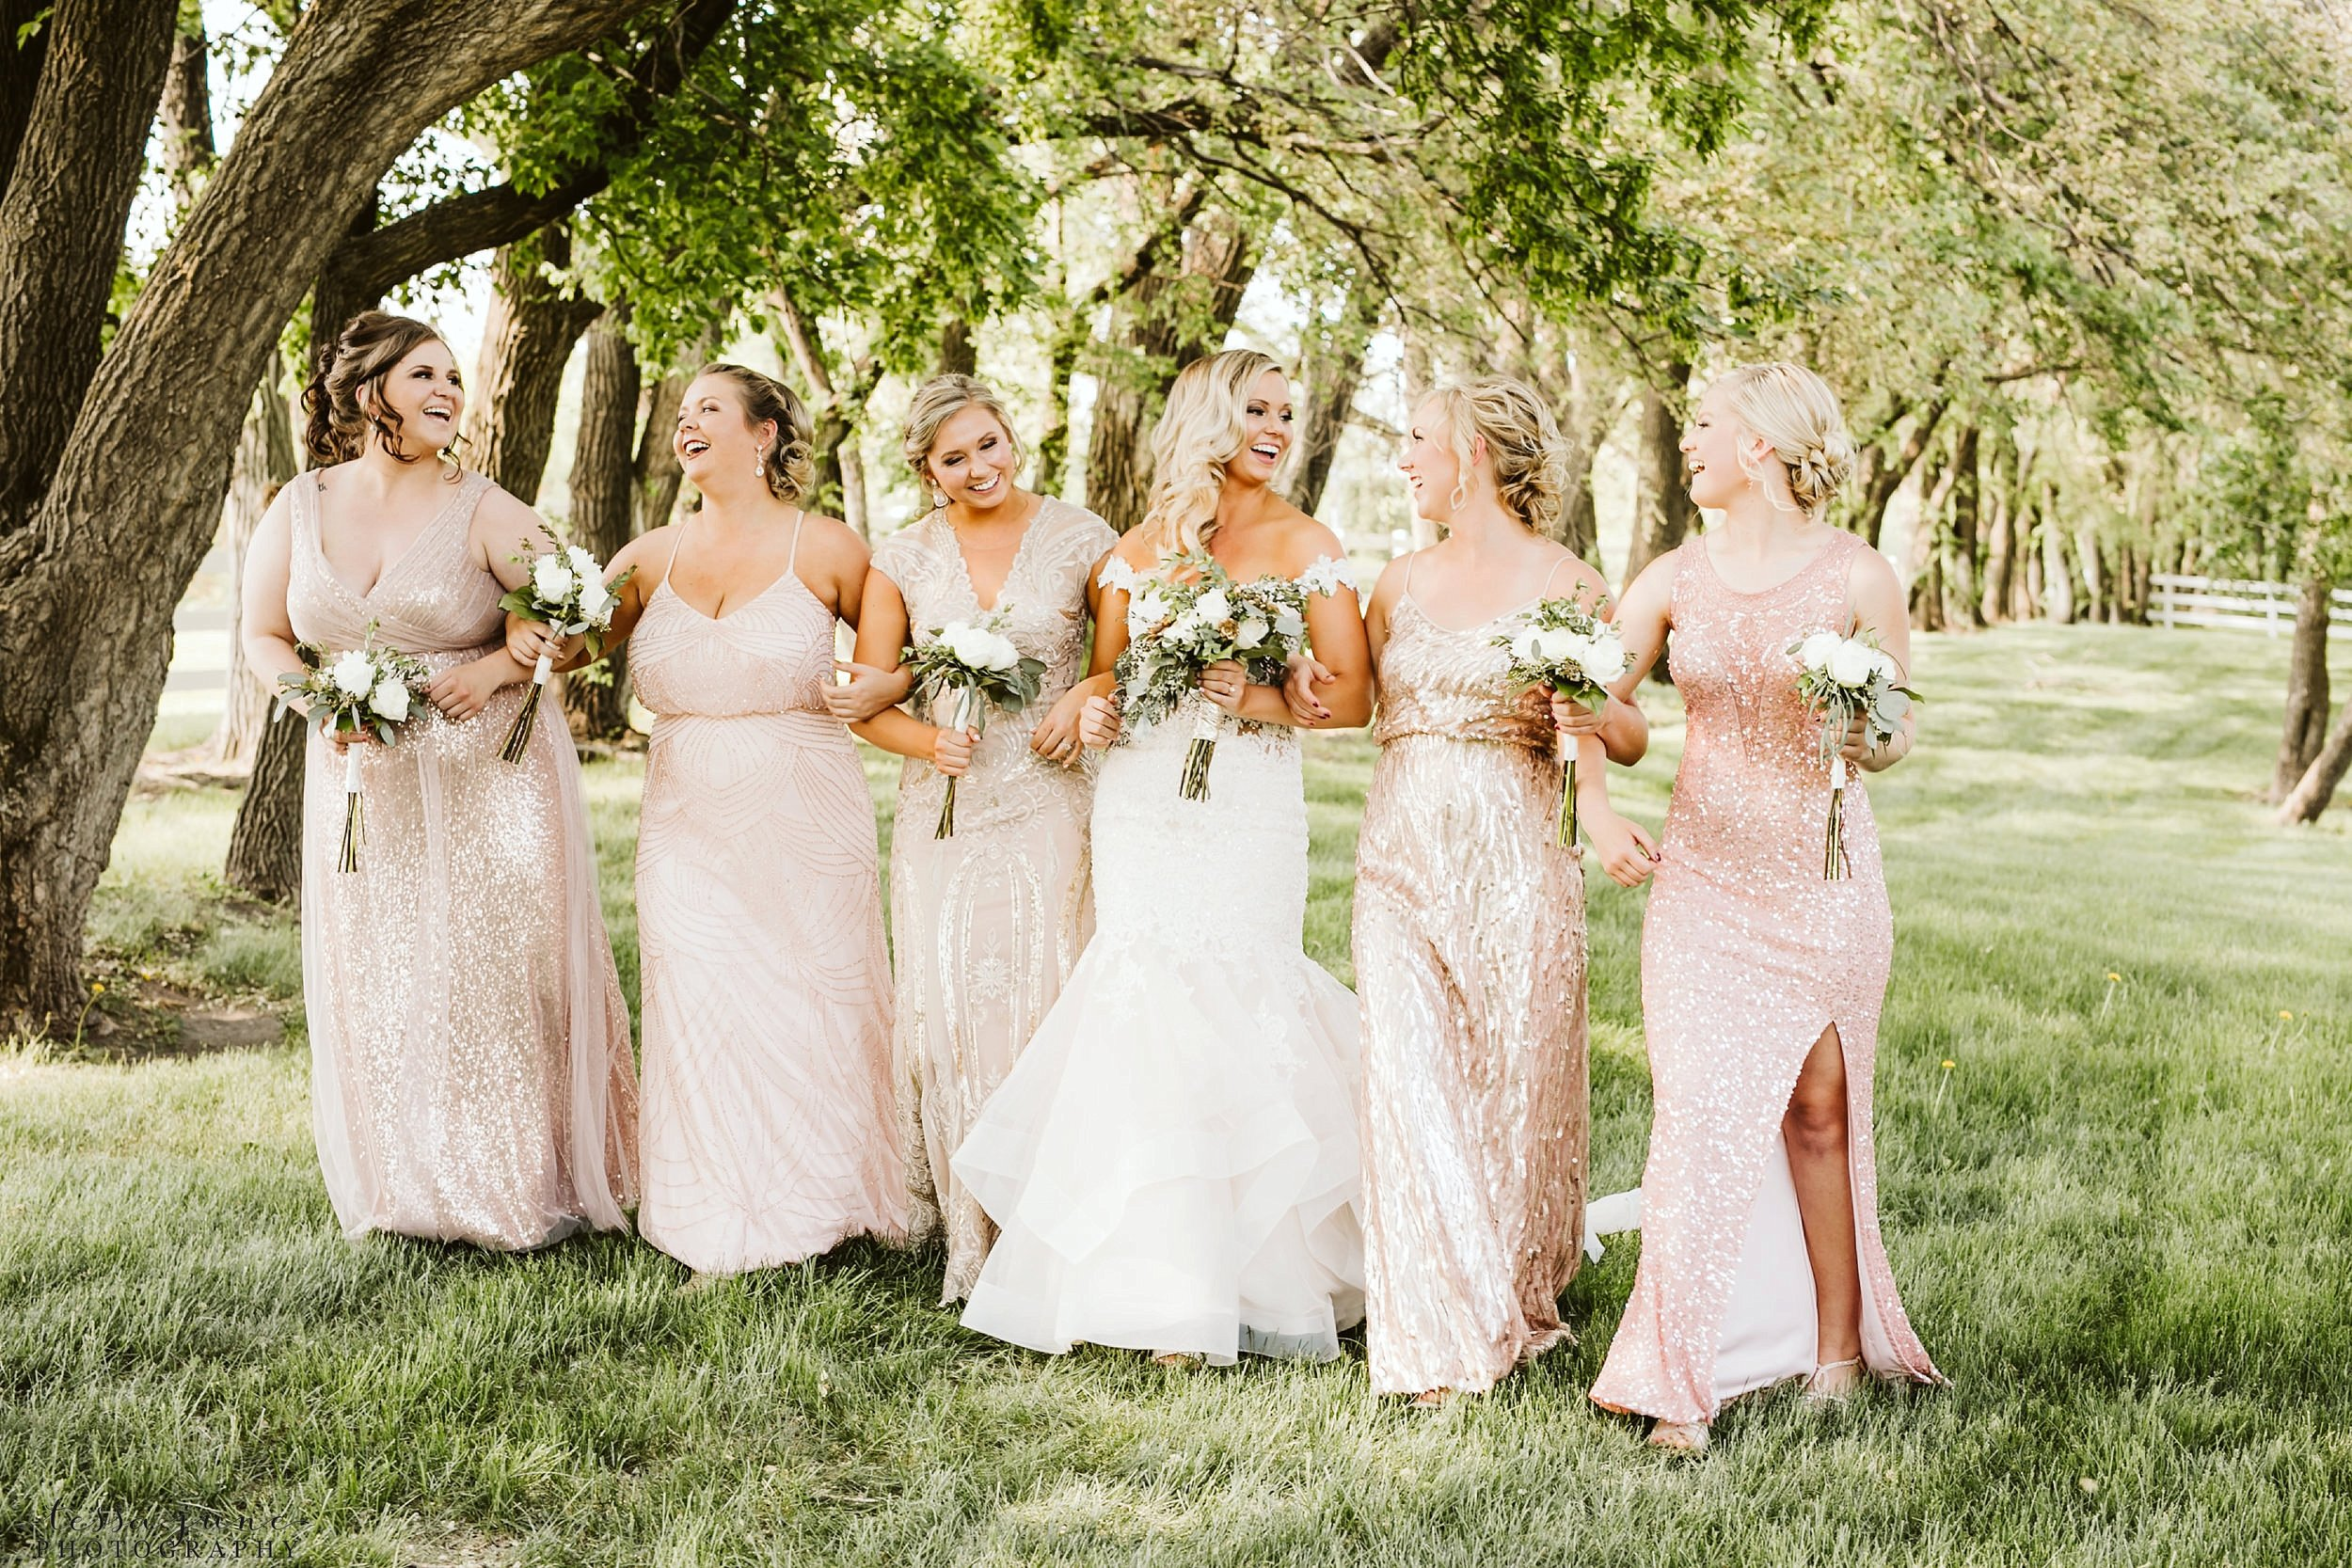 carlos-creek-winery-wedding-alexandria-minnesota-glam-elegant-floral-54.jpg